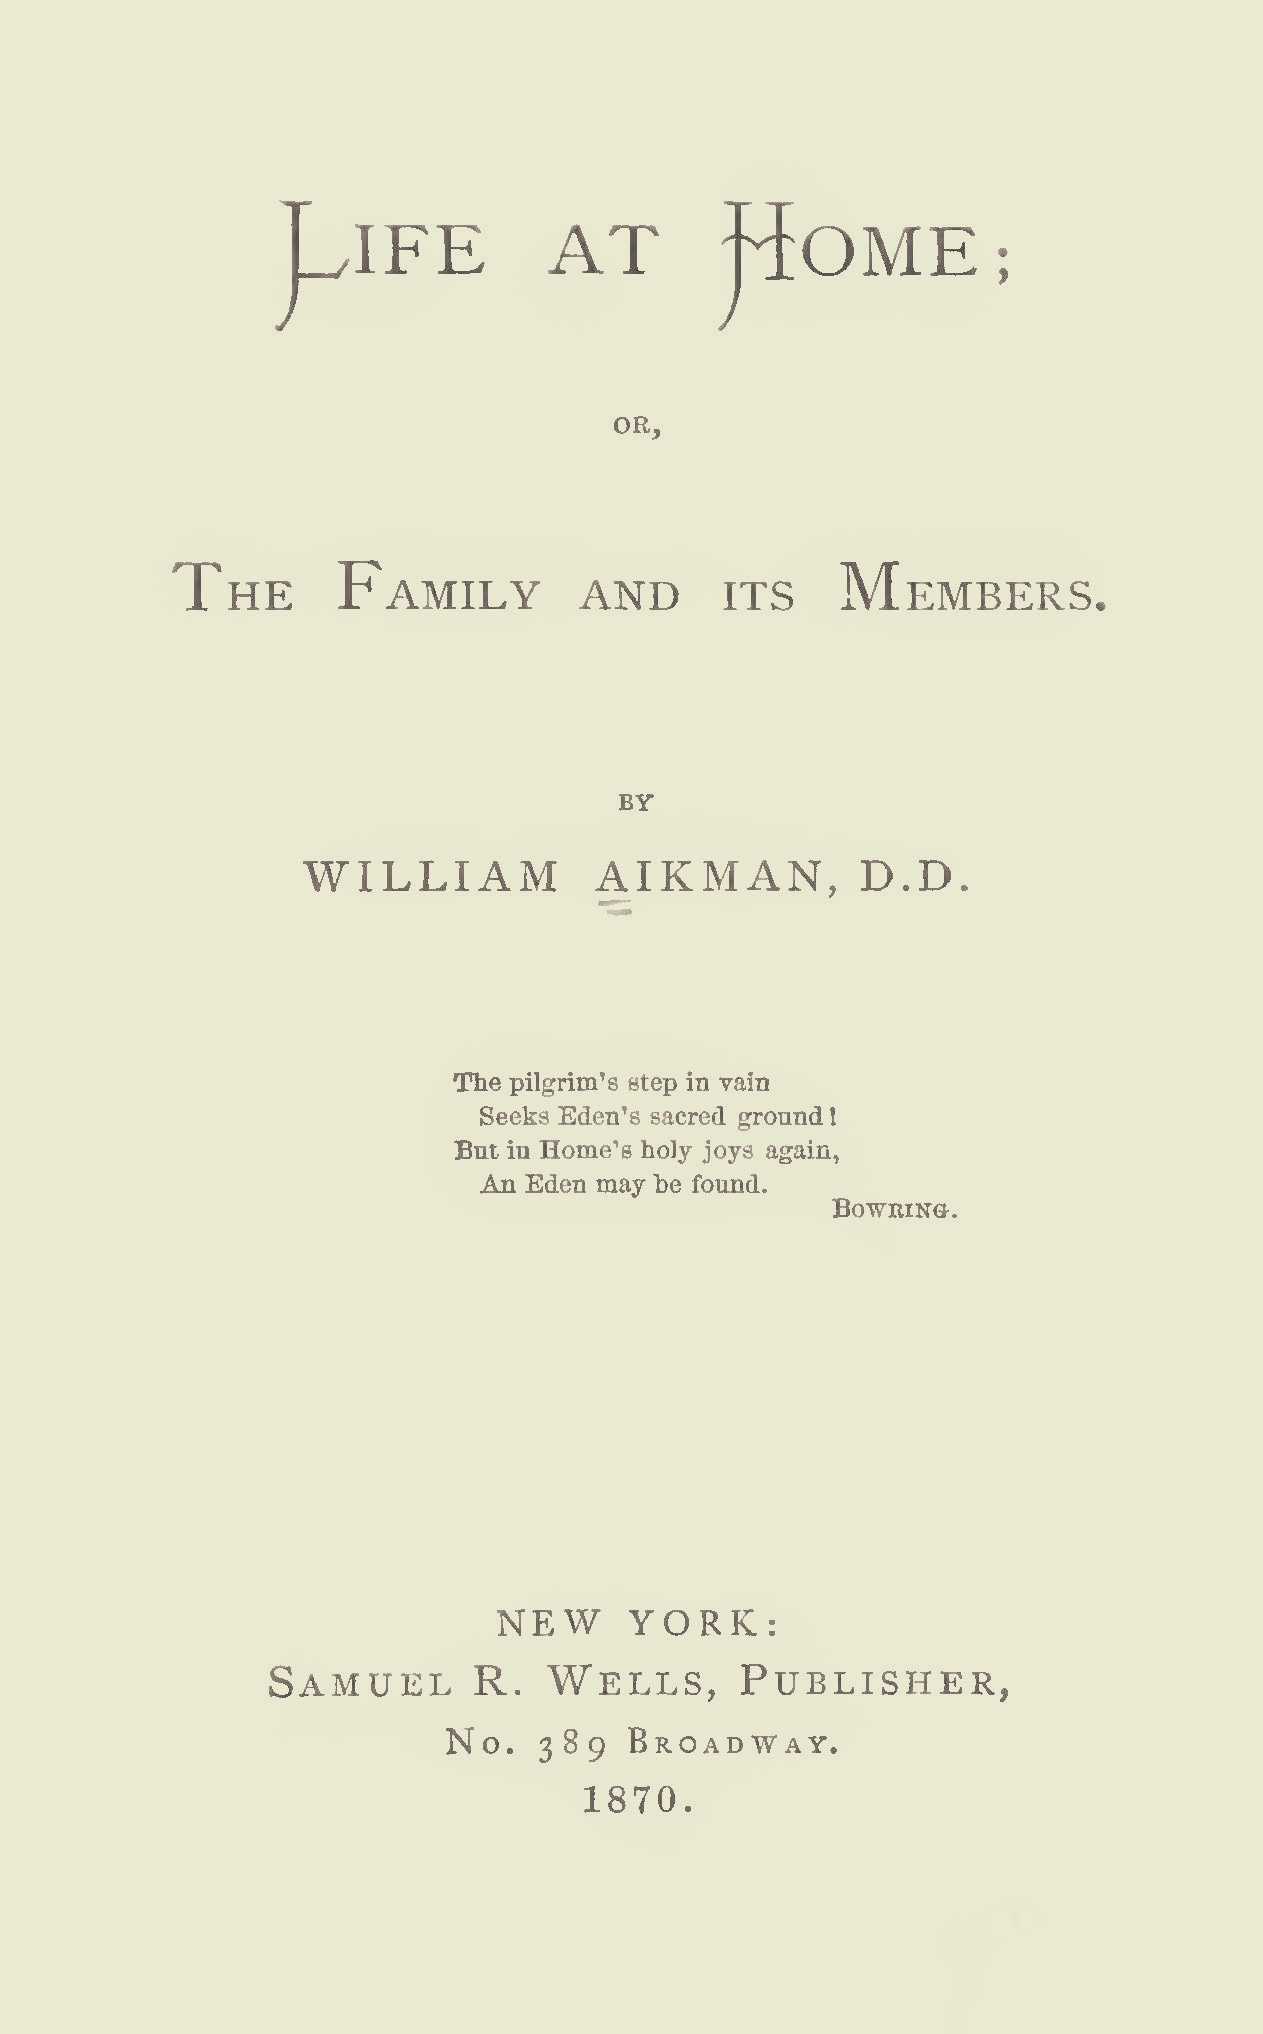 Aikman, William, Life at Home Title Page.jpg